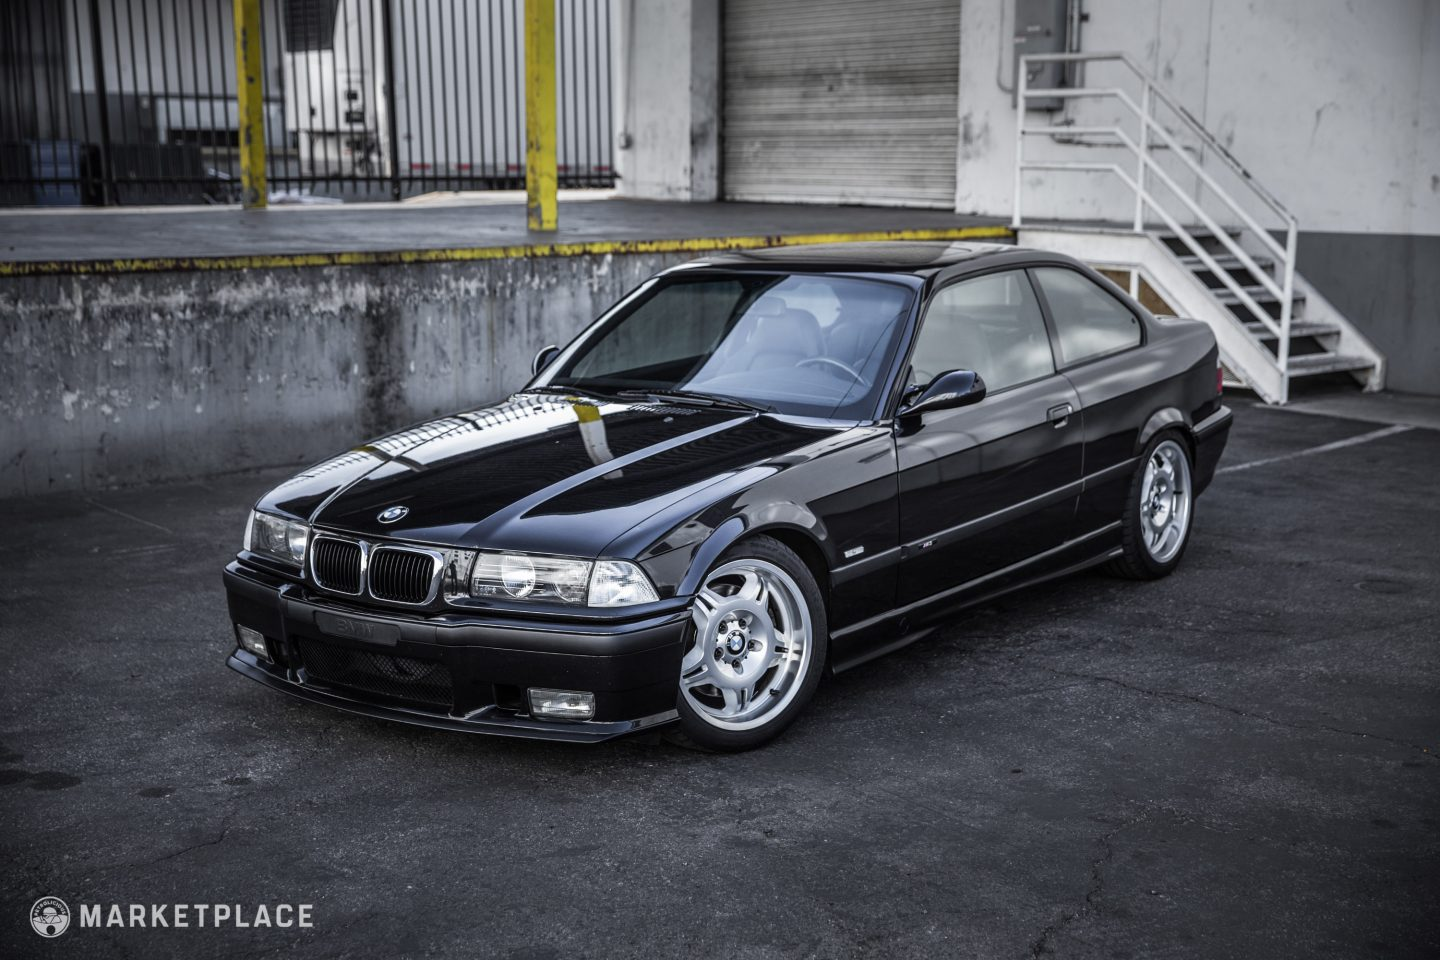 2 owner 1999 bmw m3 ppi included u2022 petrolicious rh petrolicious com 1999 bmw m3 convertible owners manual 1999 bmw m3 convertible owners manual